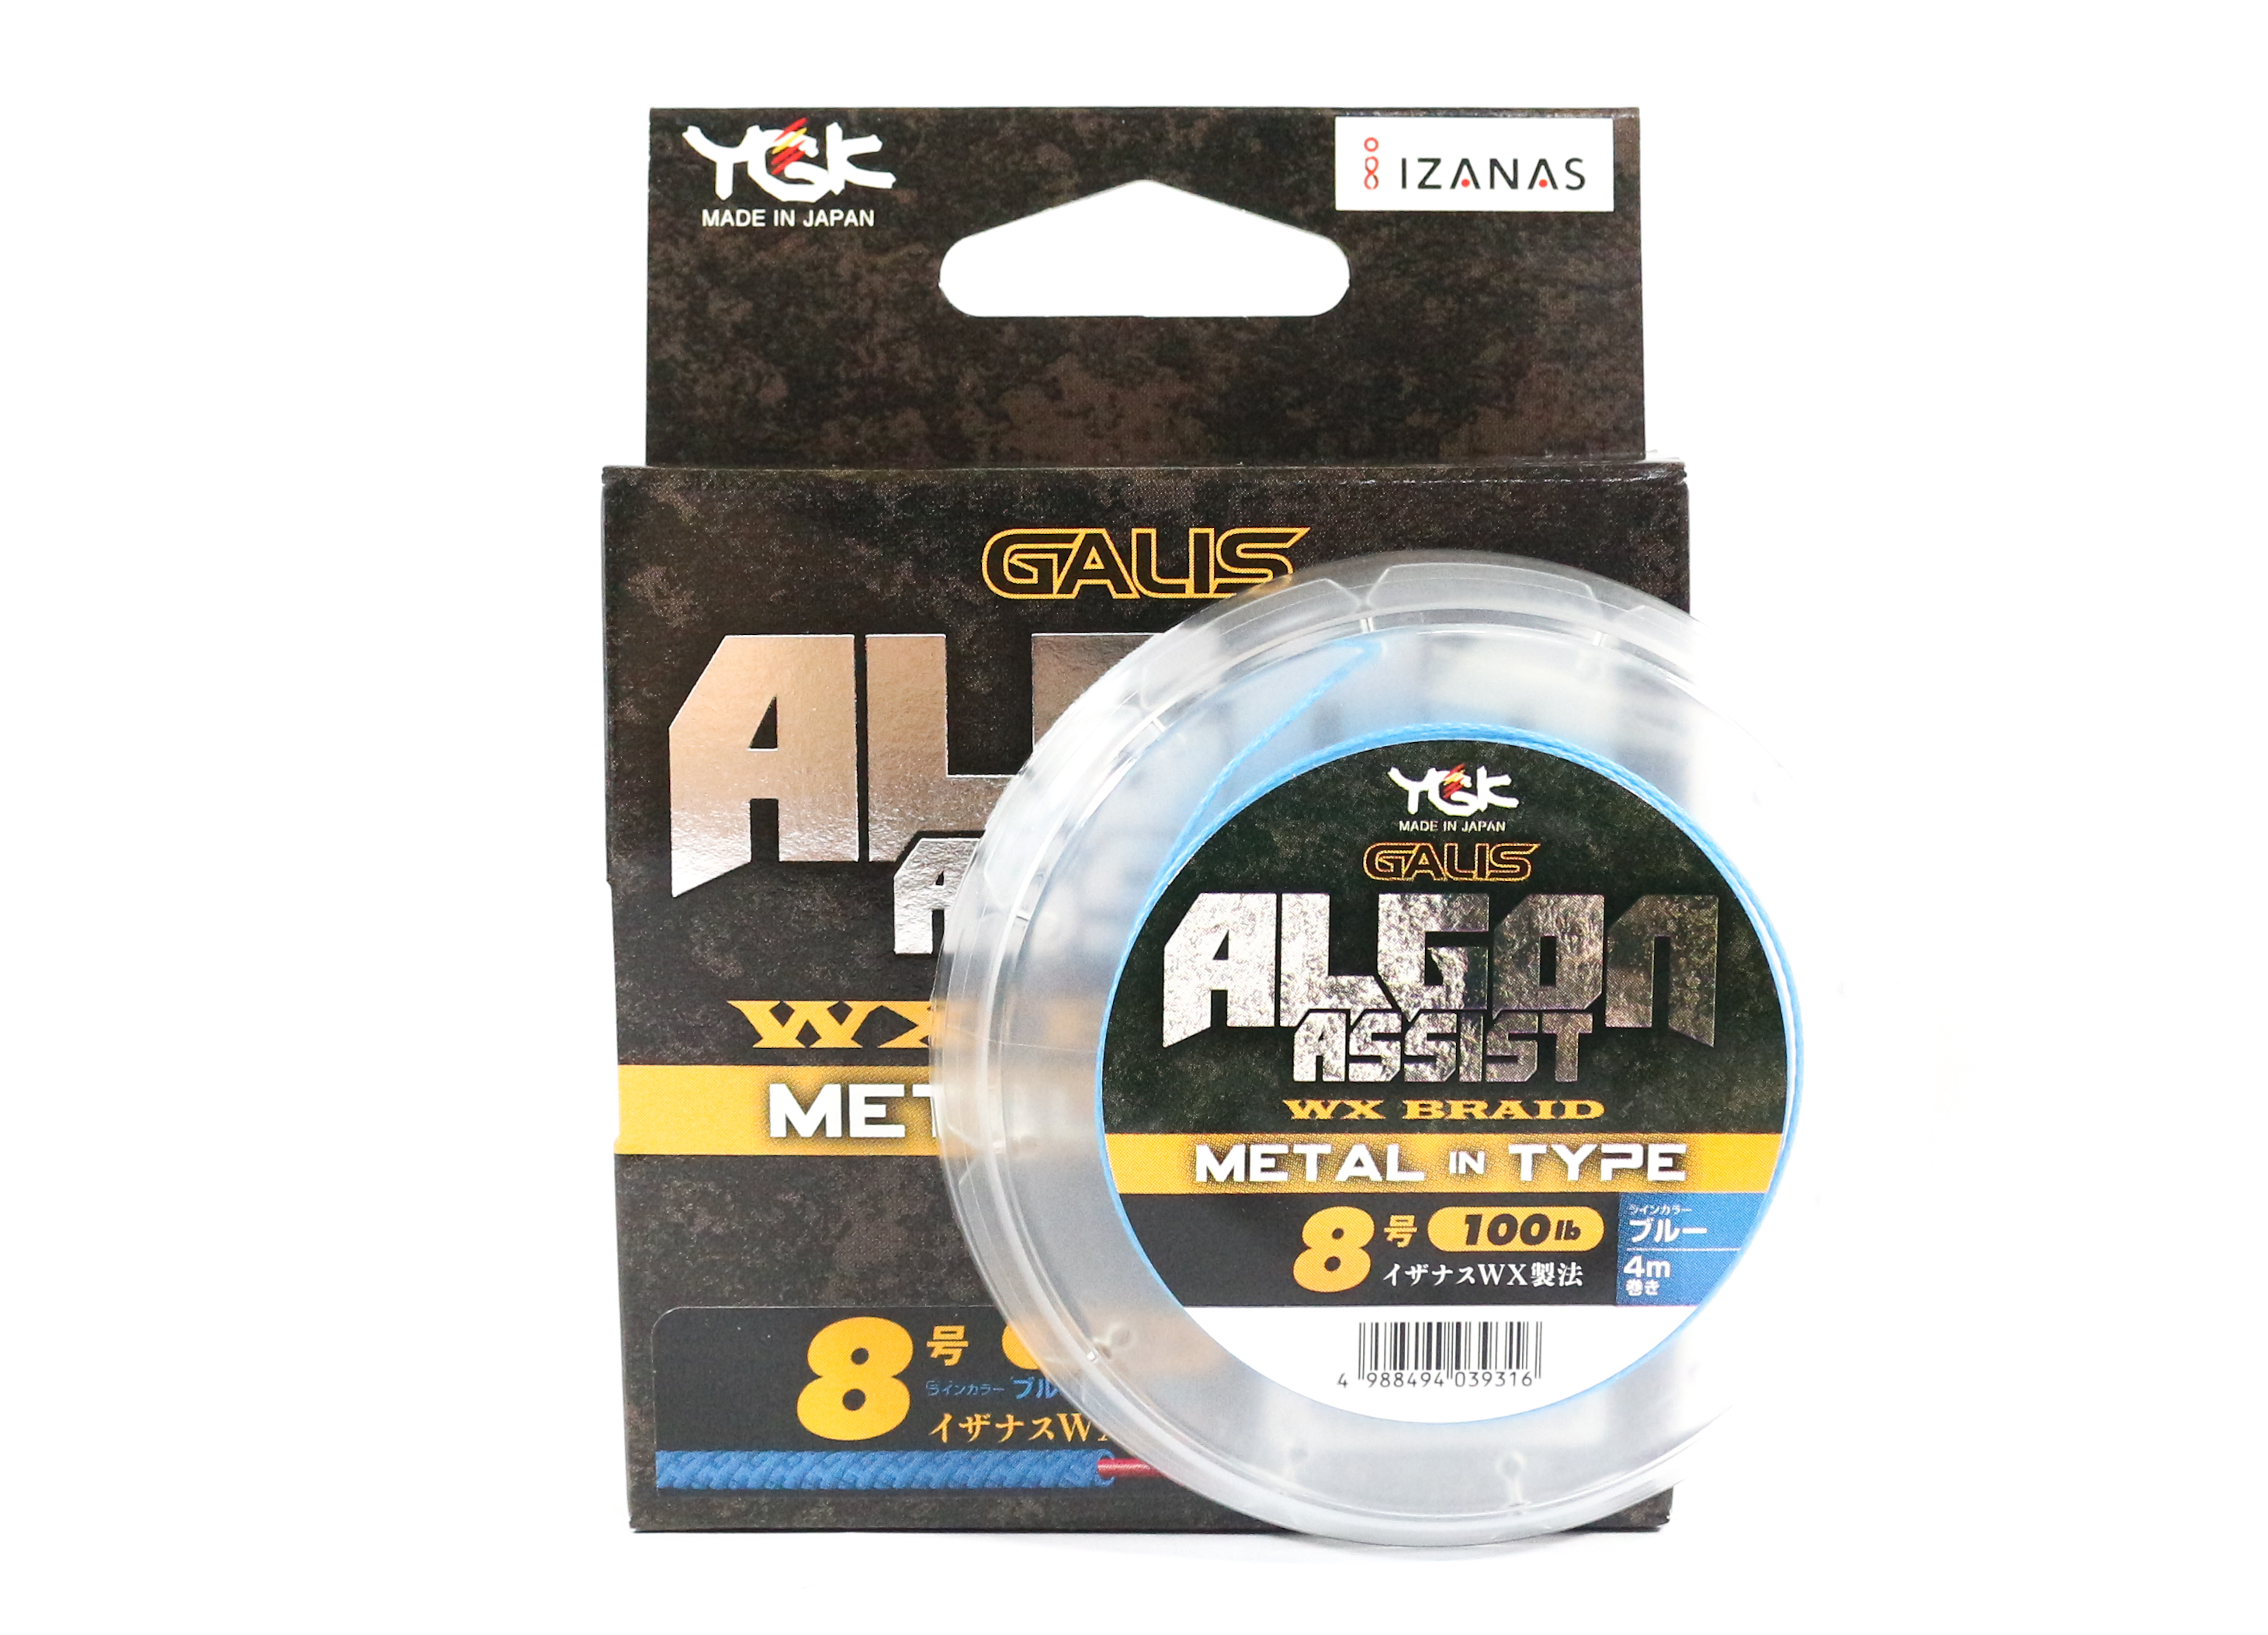 YGK Algon Assist WX Braid Metal In Type Wire Core 4m Size 8, 100lb Blue (9316)